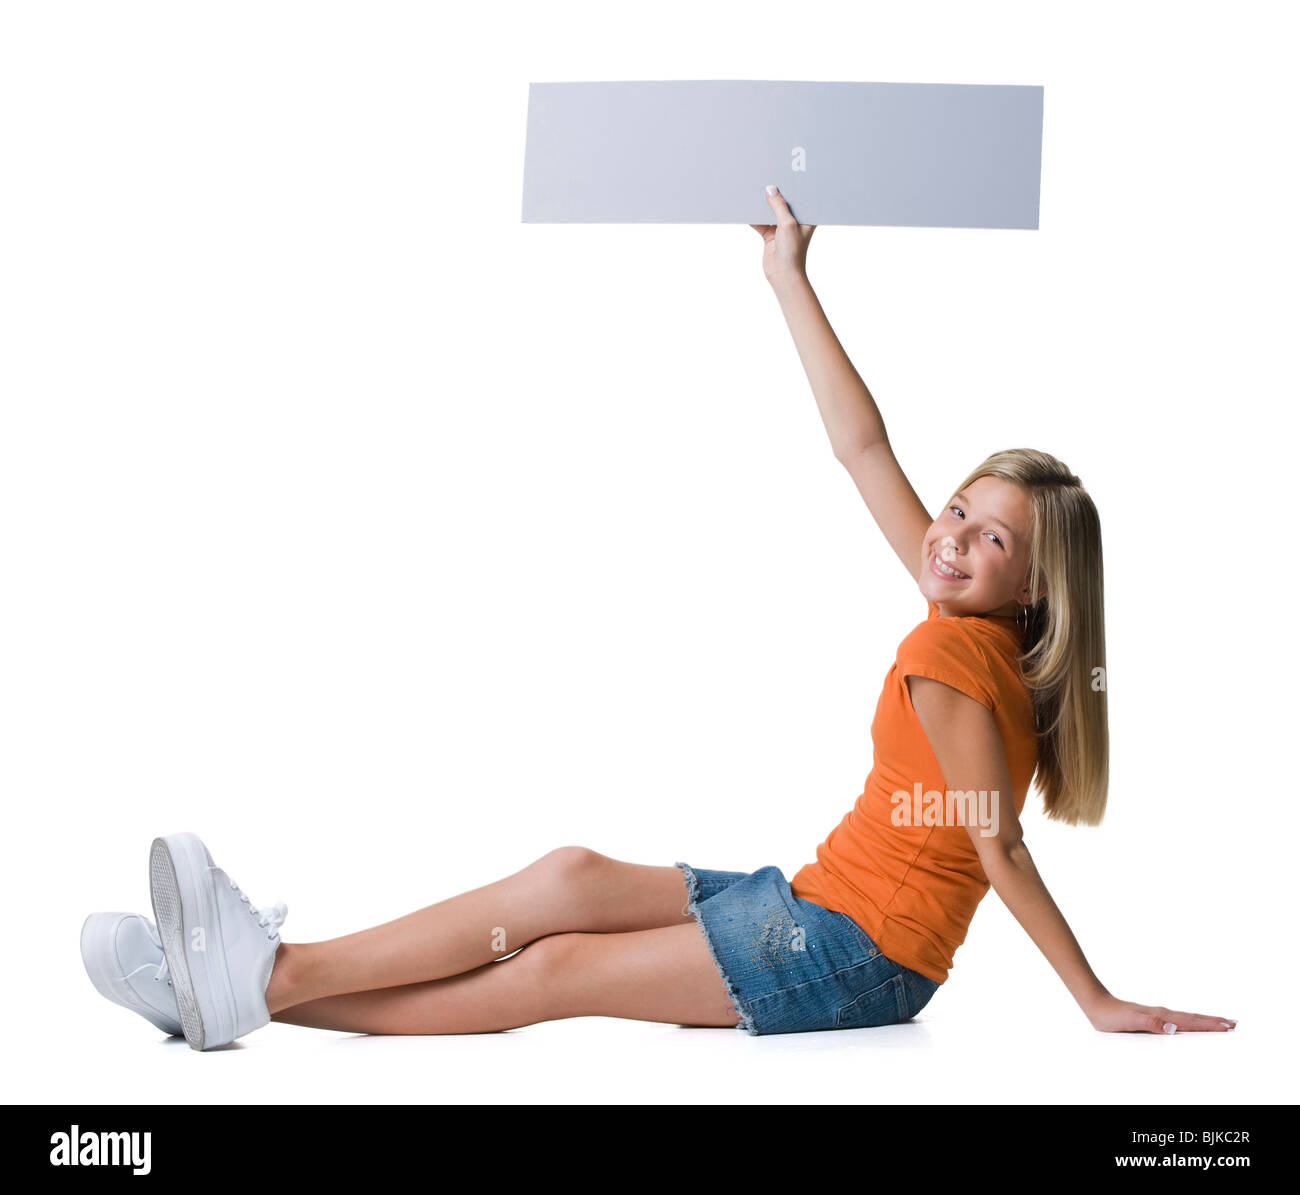 Girl holding blank sign sitting and smiling - Stock Image